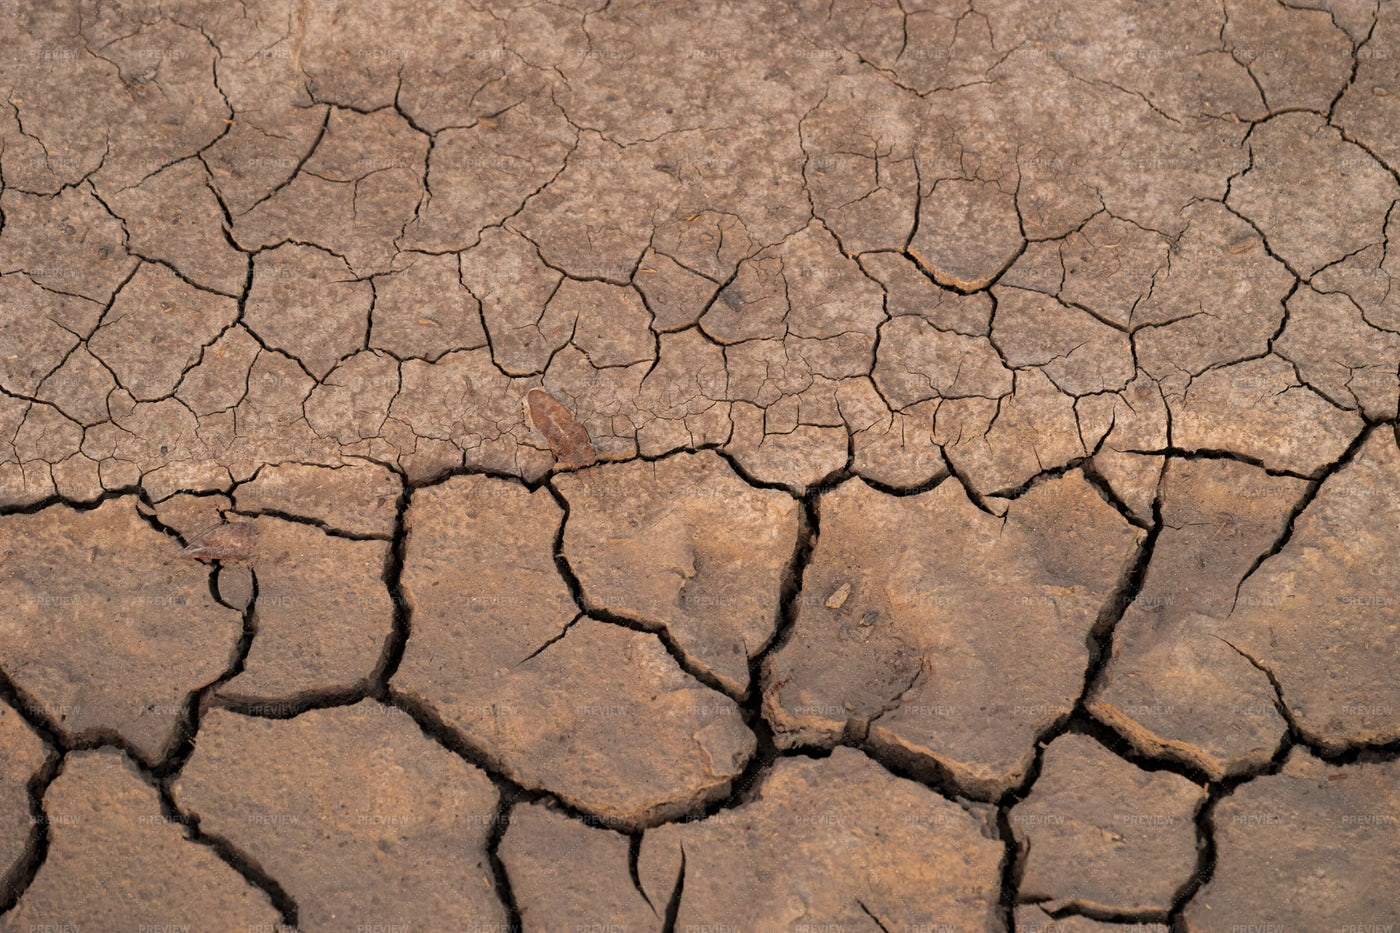 Cracked Red Soil: Stock Photos